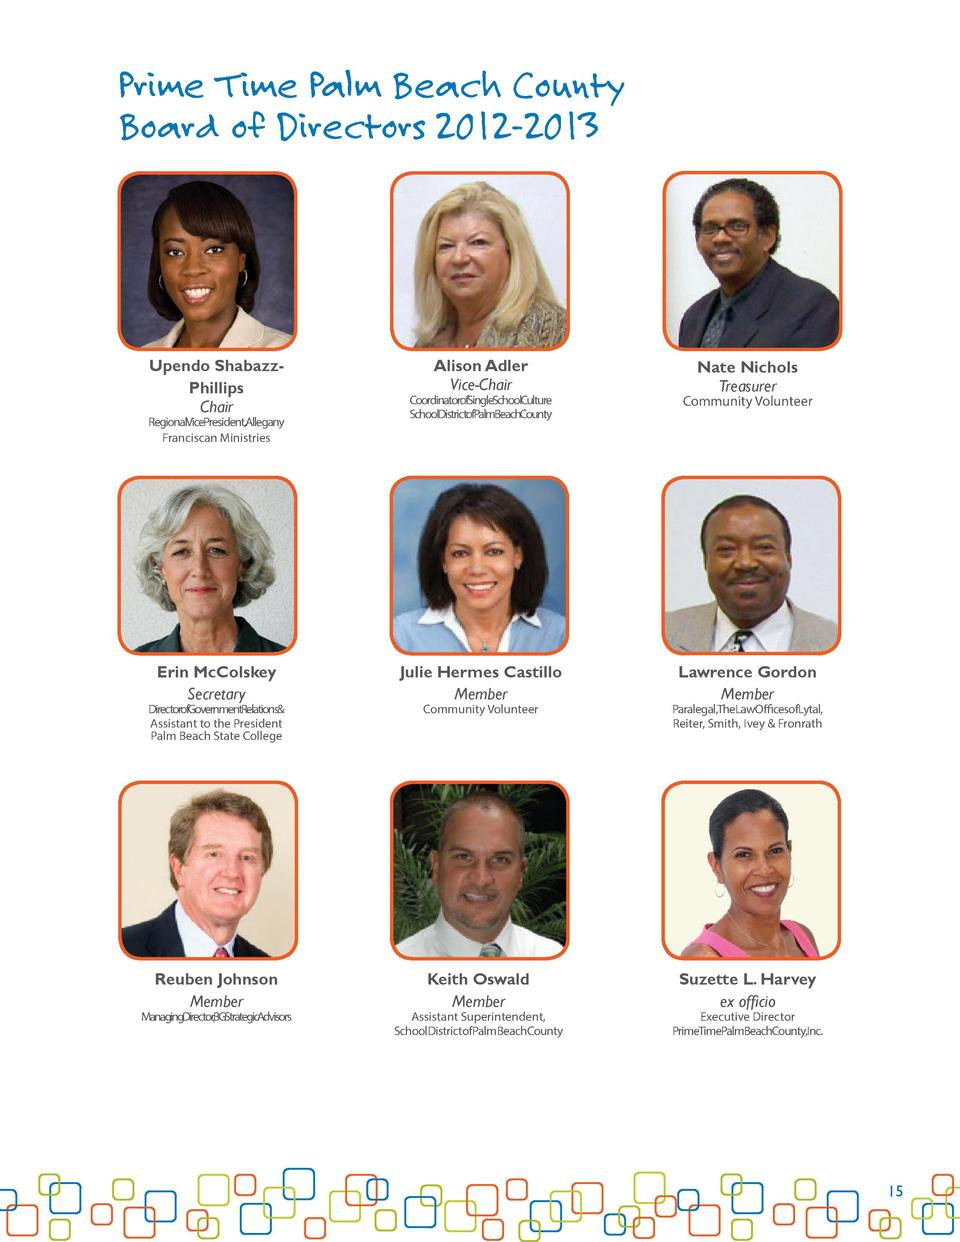 Prime Time Palm Beach County Board of Directors 2012-2013  Upendo ShabazzPhillips Chair  CoordinatorofSingleSchoolCulture ...